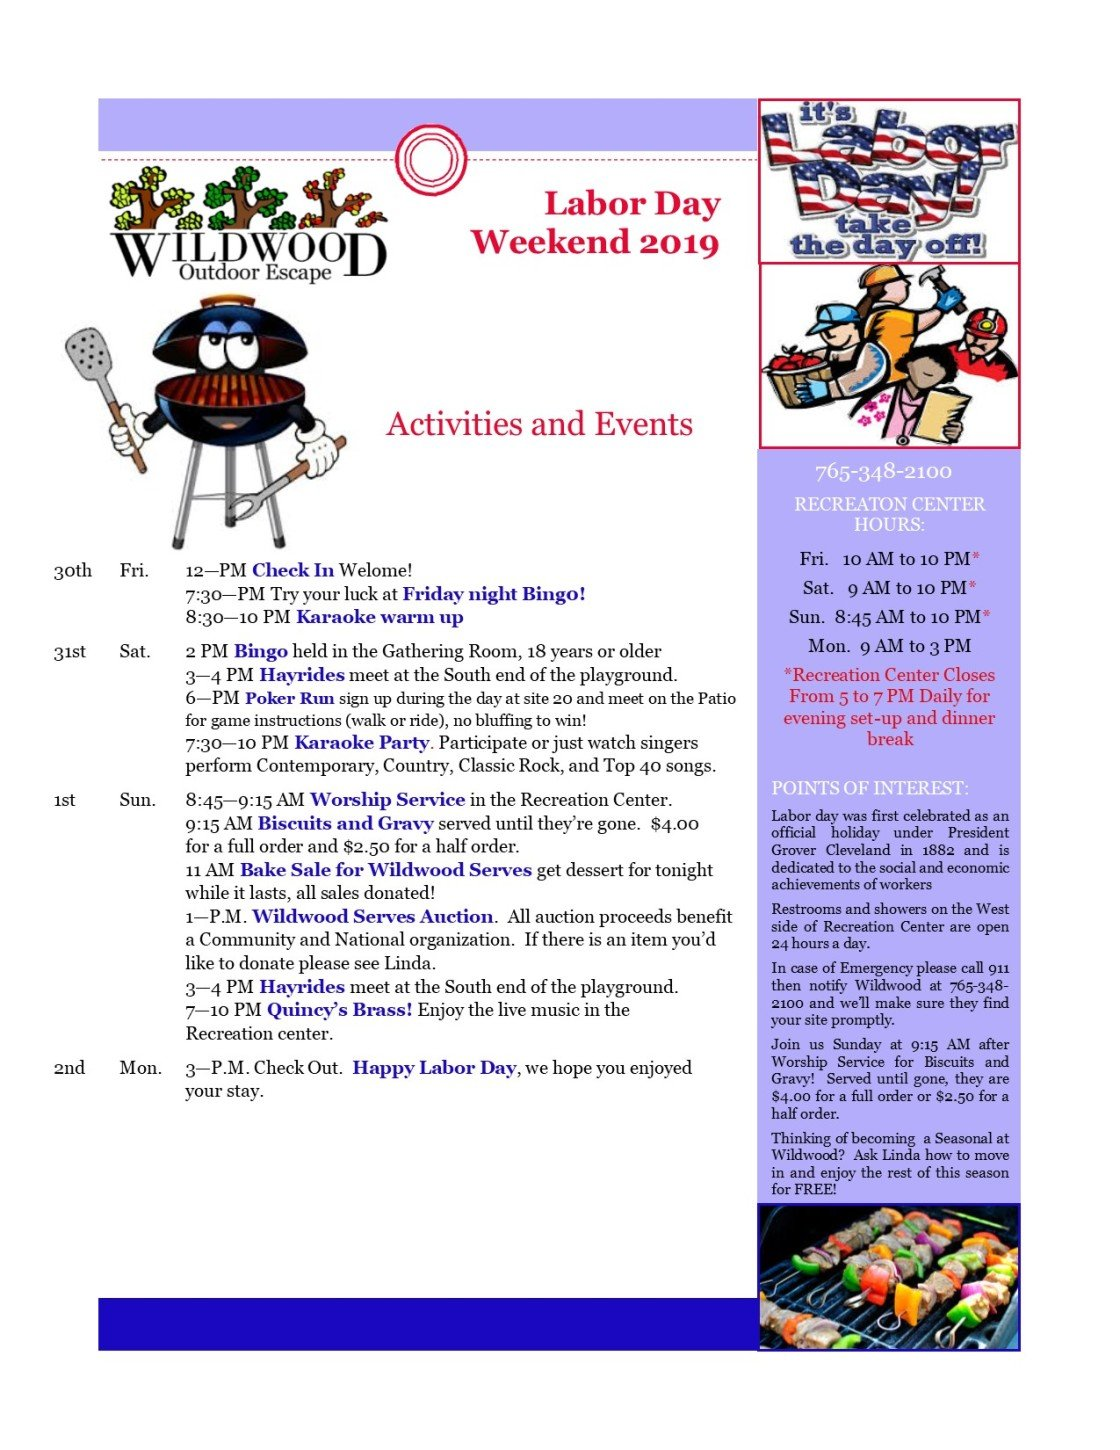 Image of activities & events for labor day weekend